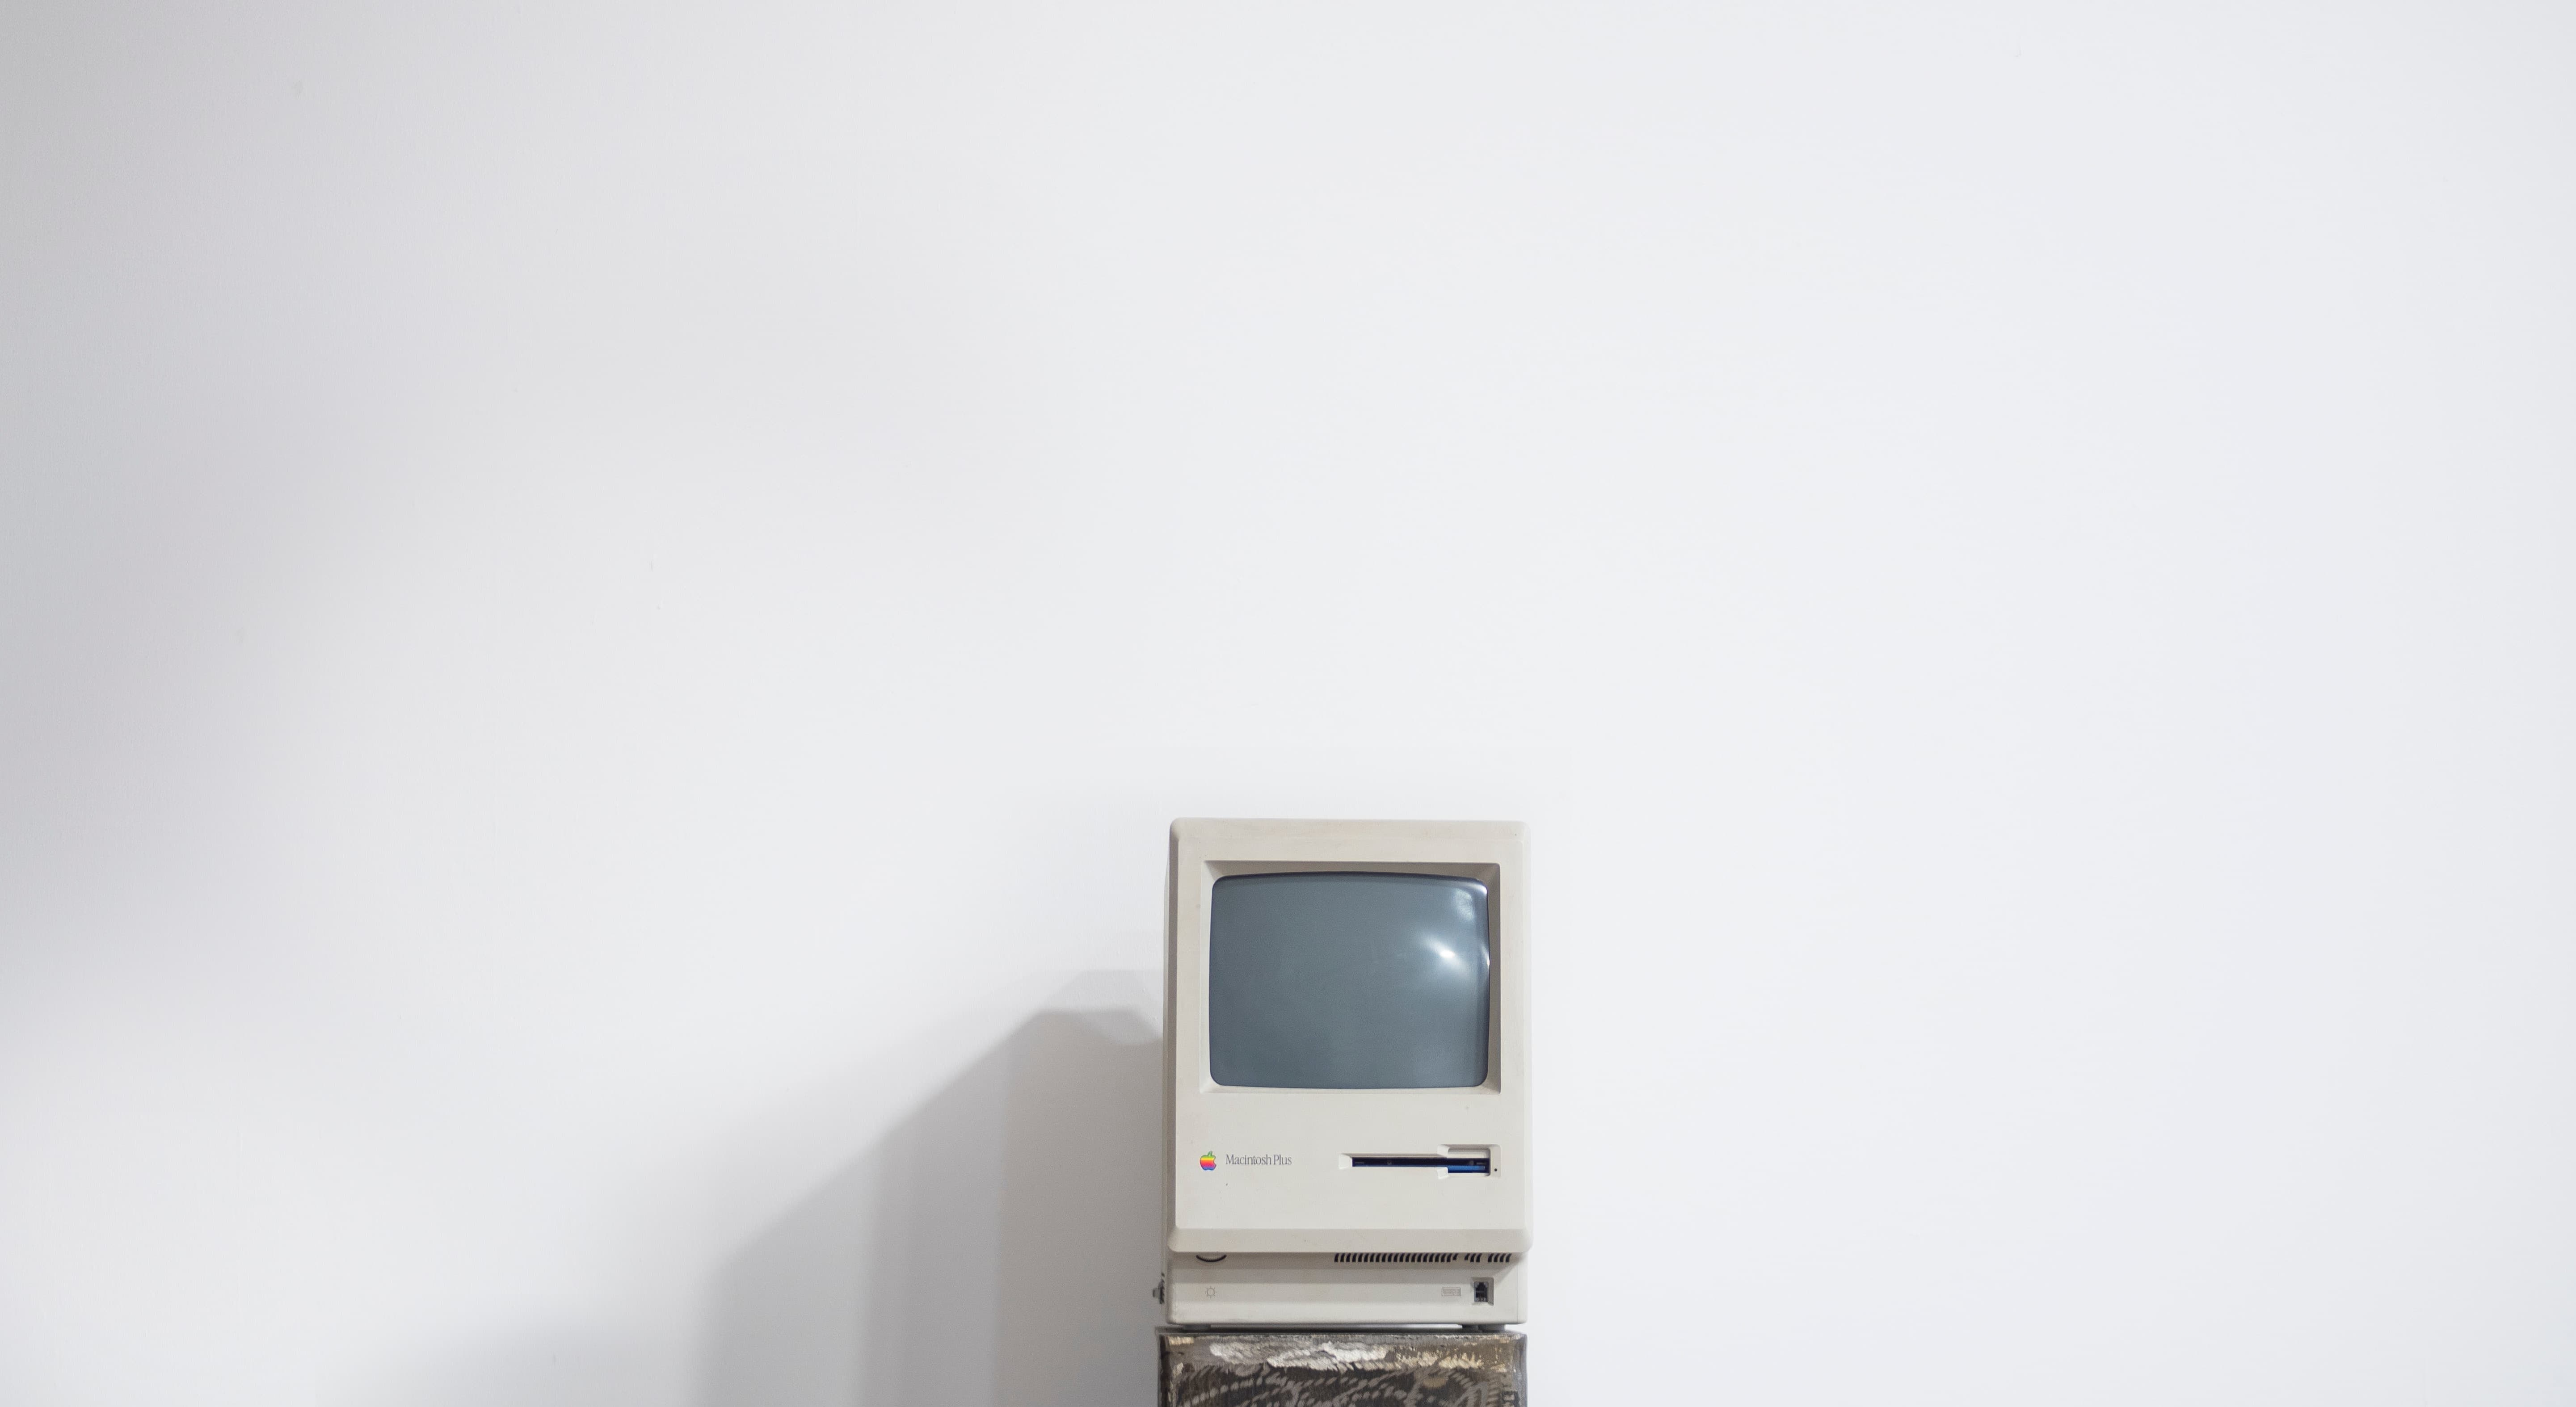 Vintage Mac book pro with a very old user interface